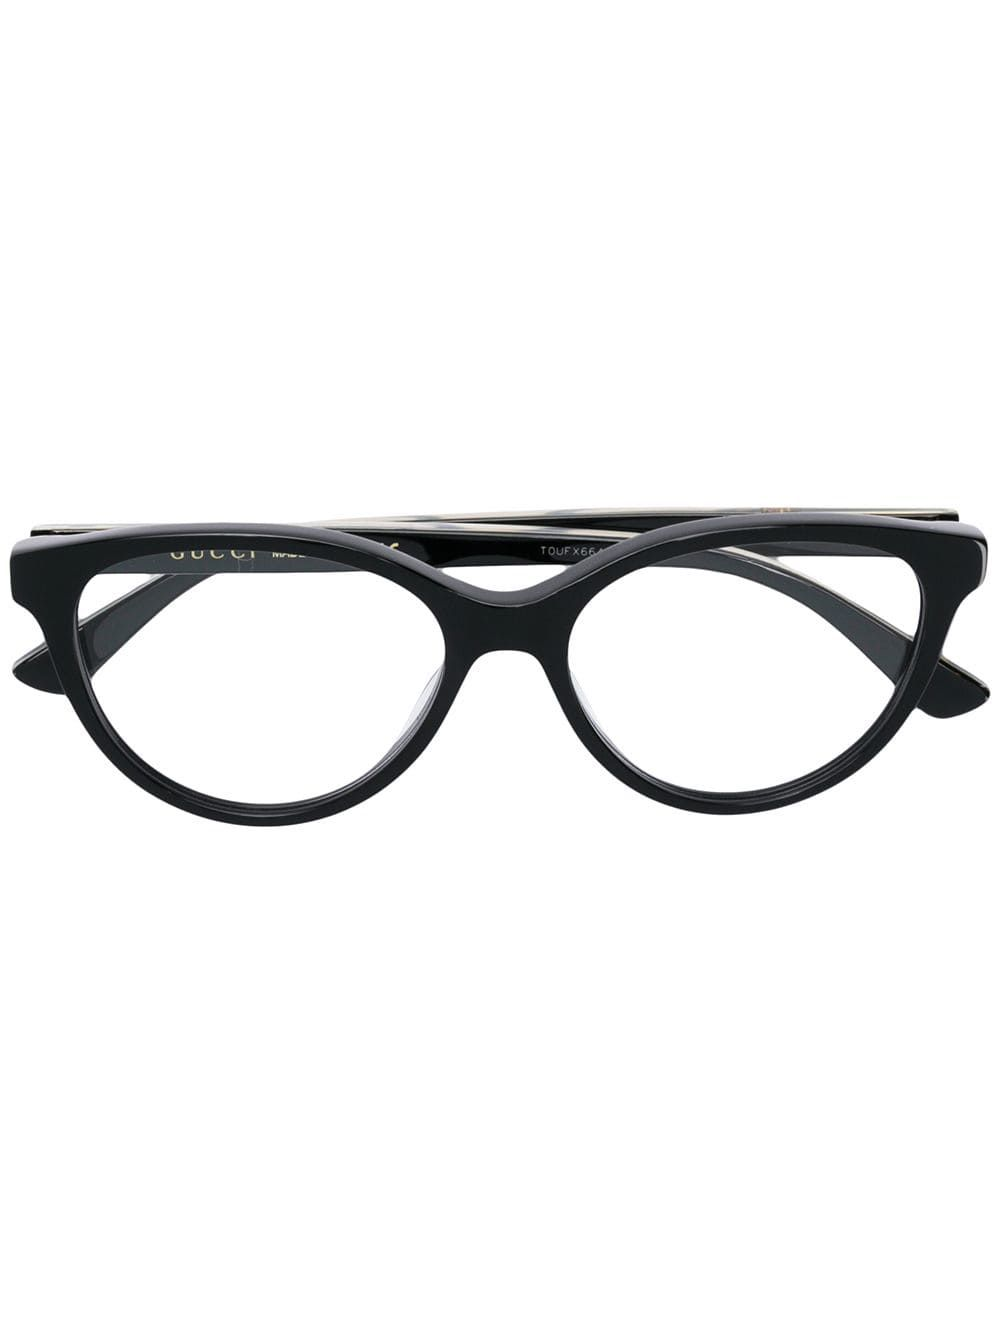 1e1ab6b157 GUCCI GUCCI EYEWEAR CAT EYE FRAME GLASSES BLACK gucci Shades